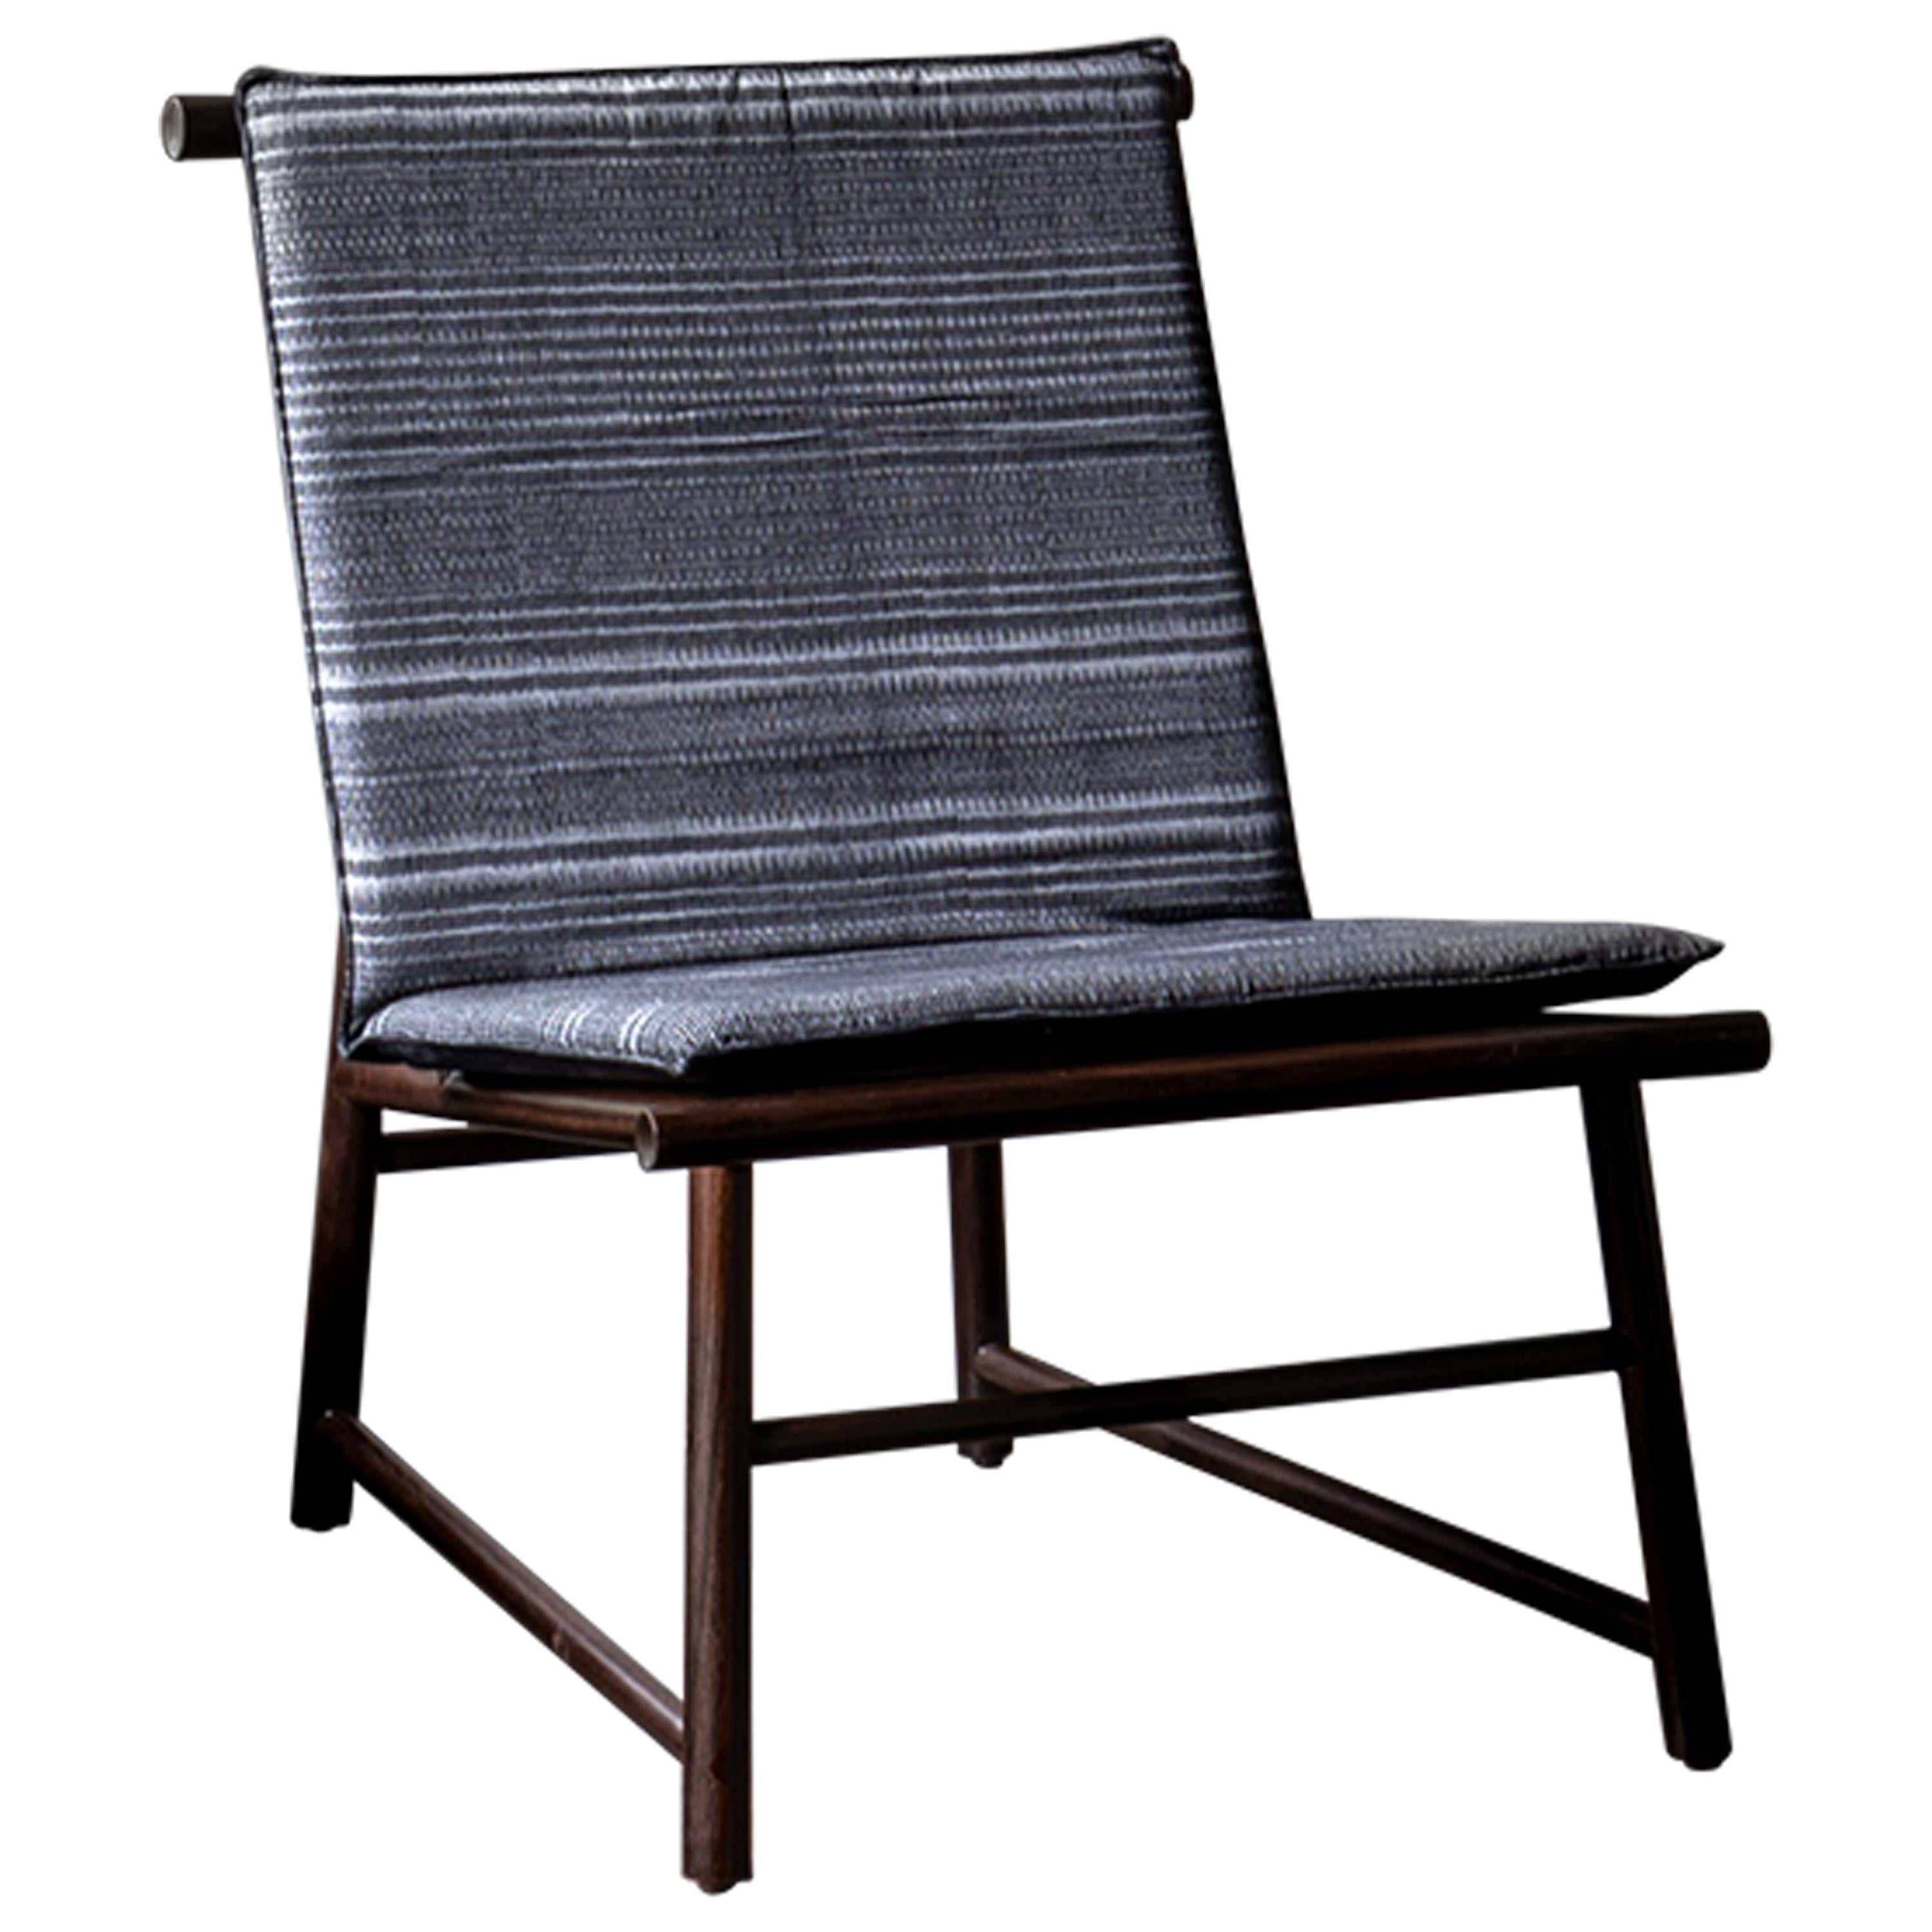 Easy Chair, Lounge Chair in Walnut Wood with Handmade Textile in Pedal Loom